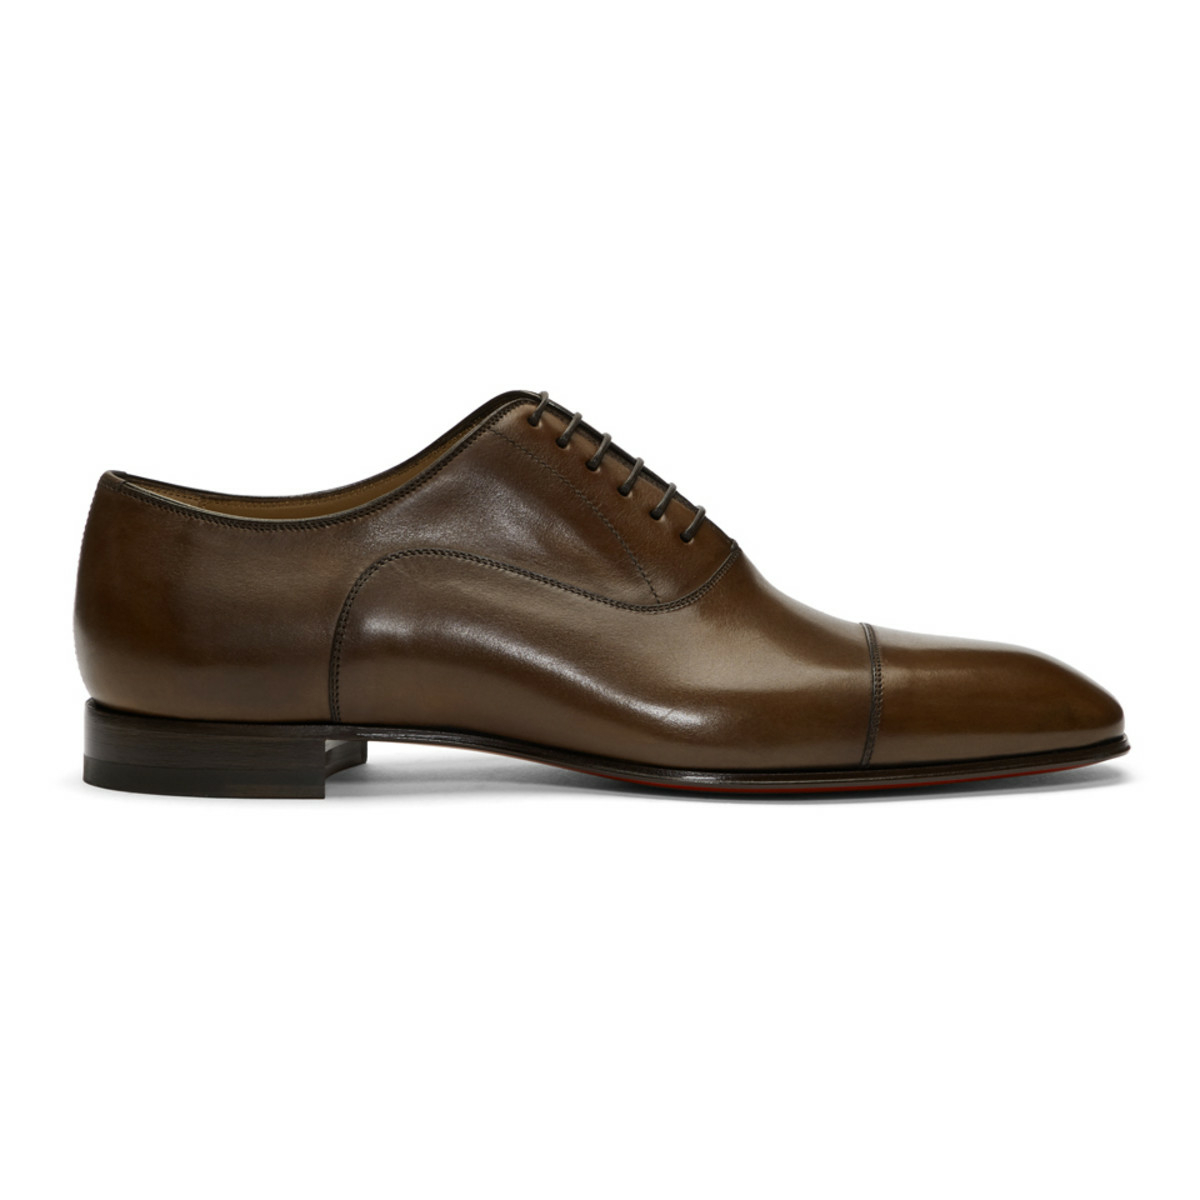 Men SHOES - GOOFASH - Mens FORMAL SHOES